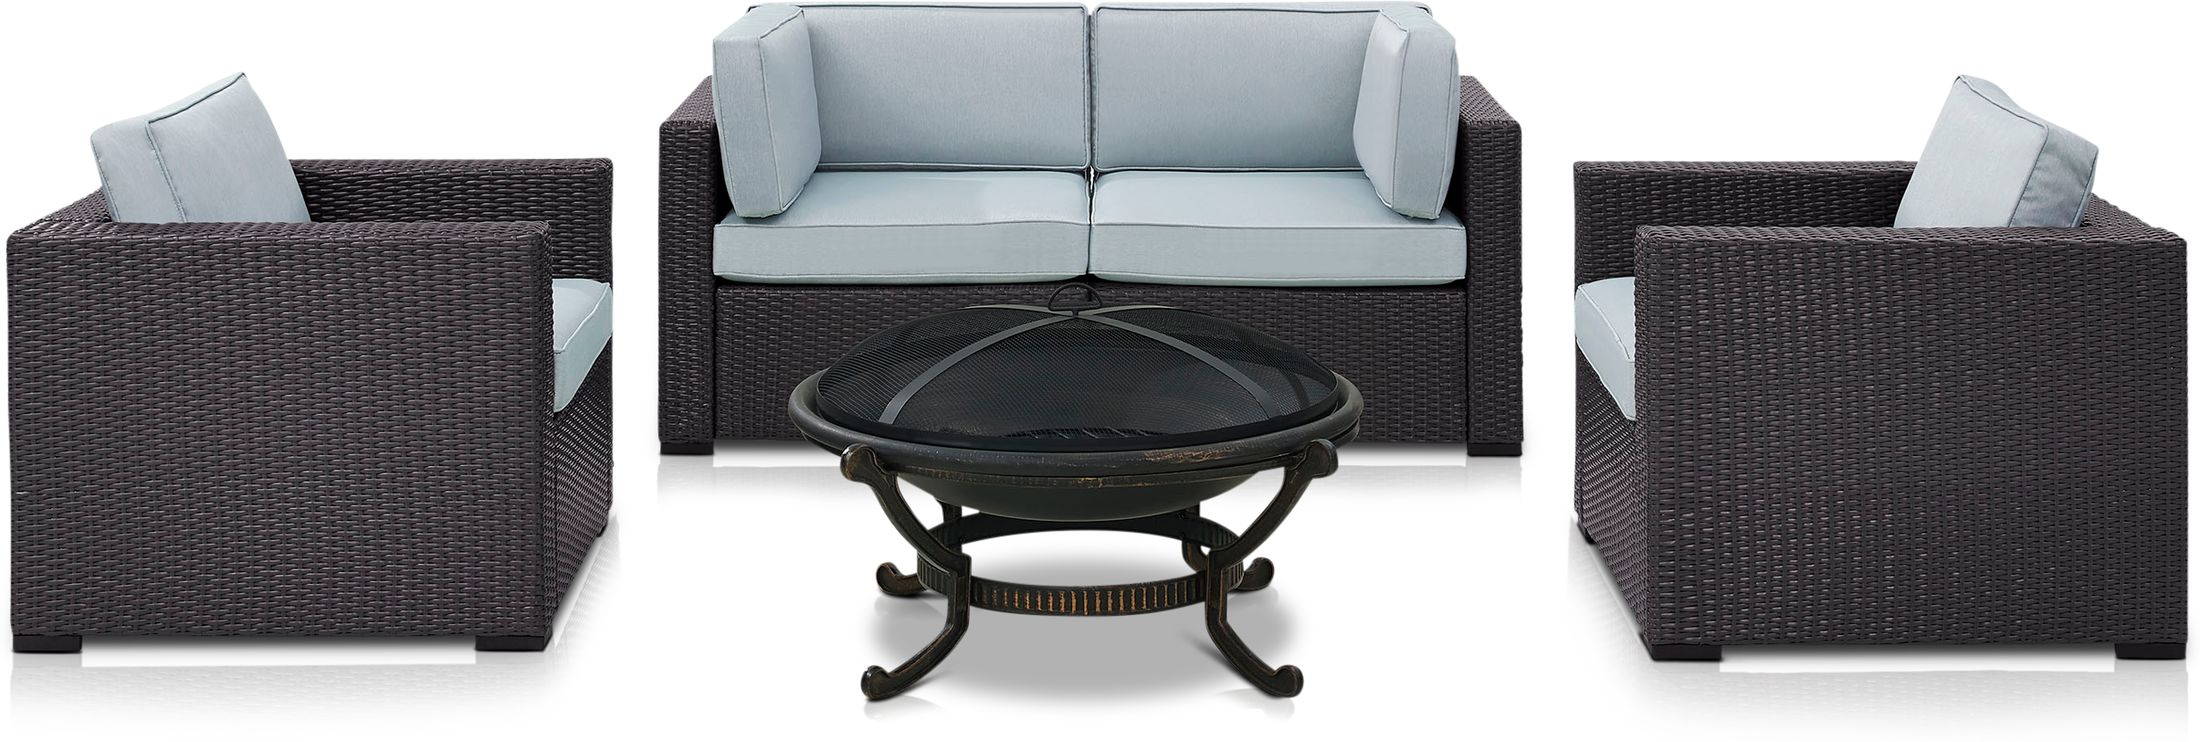 Outdoor Furniture - Isla Outdoor Loveseat, 2 Chairs and Fire Pit